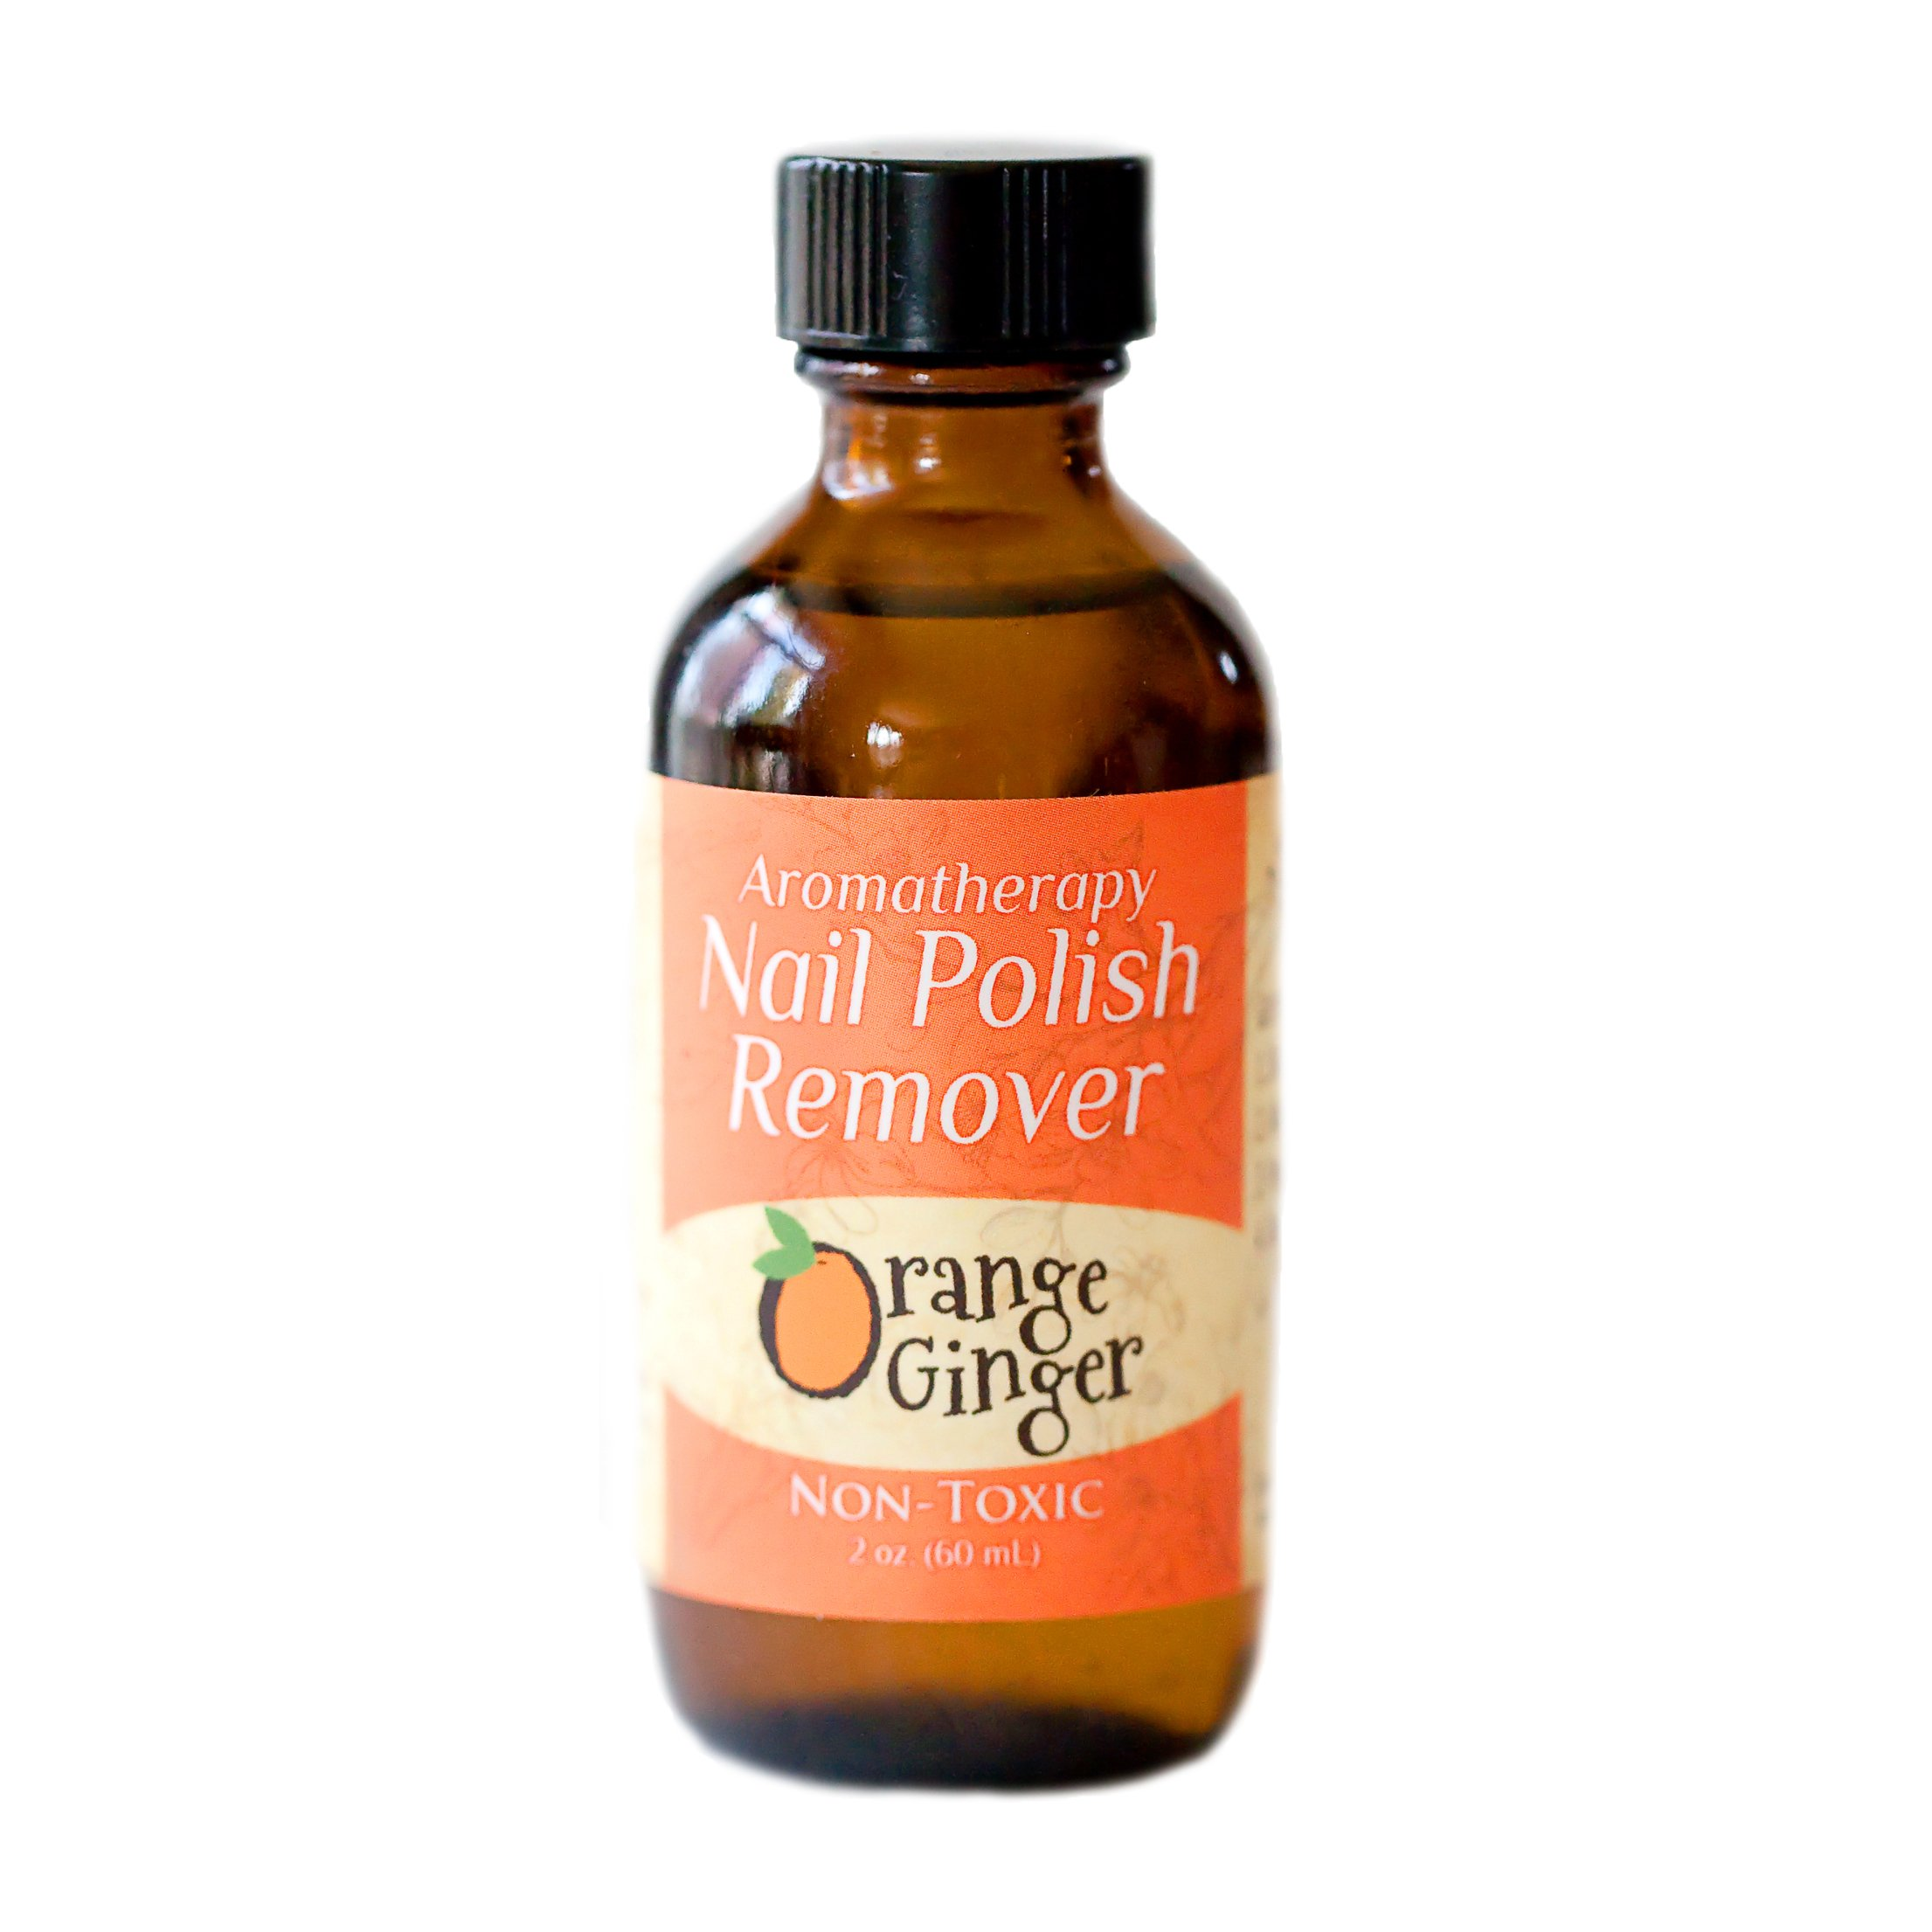 Marley Marie Naturals Nail Polish Remover- Orange Ginger (Energy) 4 oz. bottle by Marley Marie Naturals